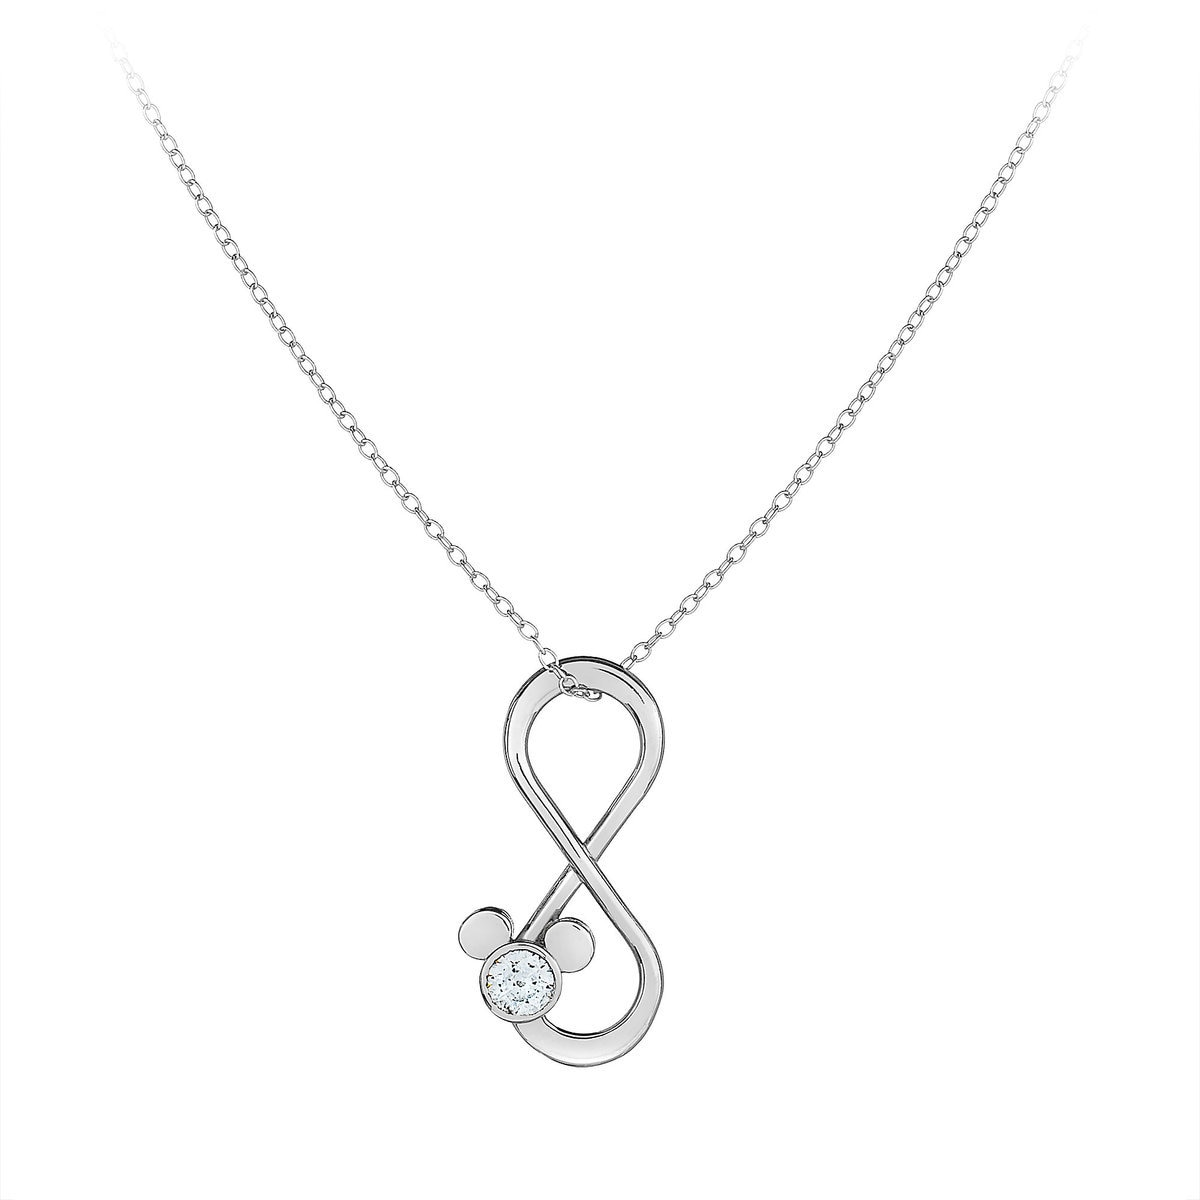 sign necklaces happiness boutique necklace rose gold times infinity en